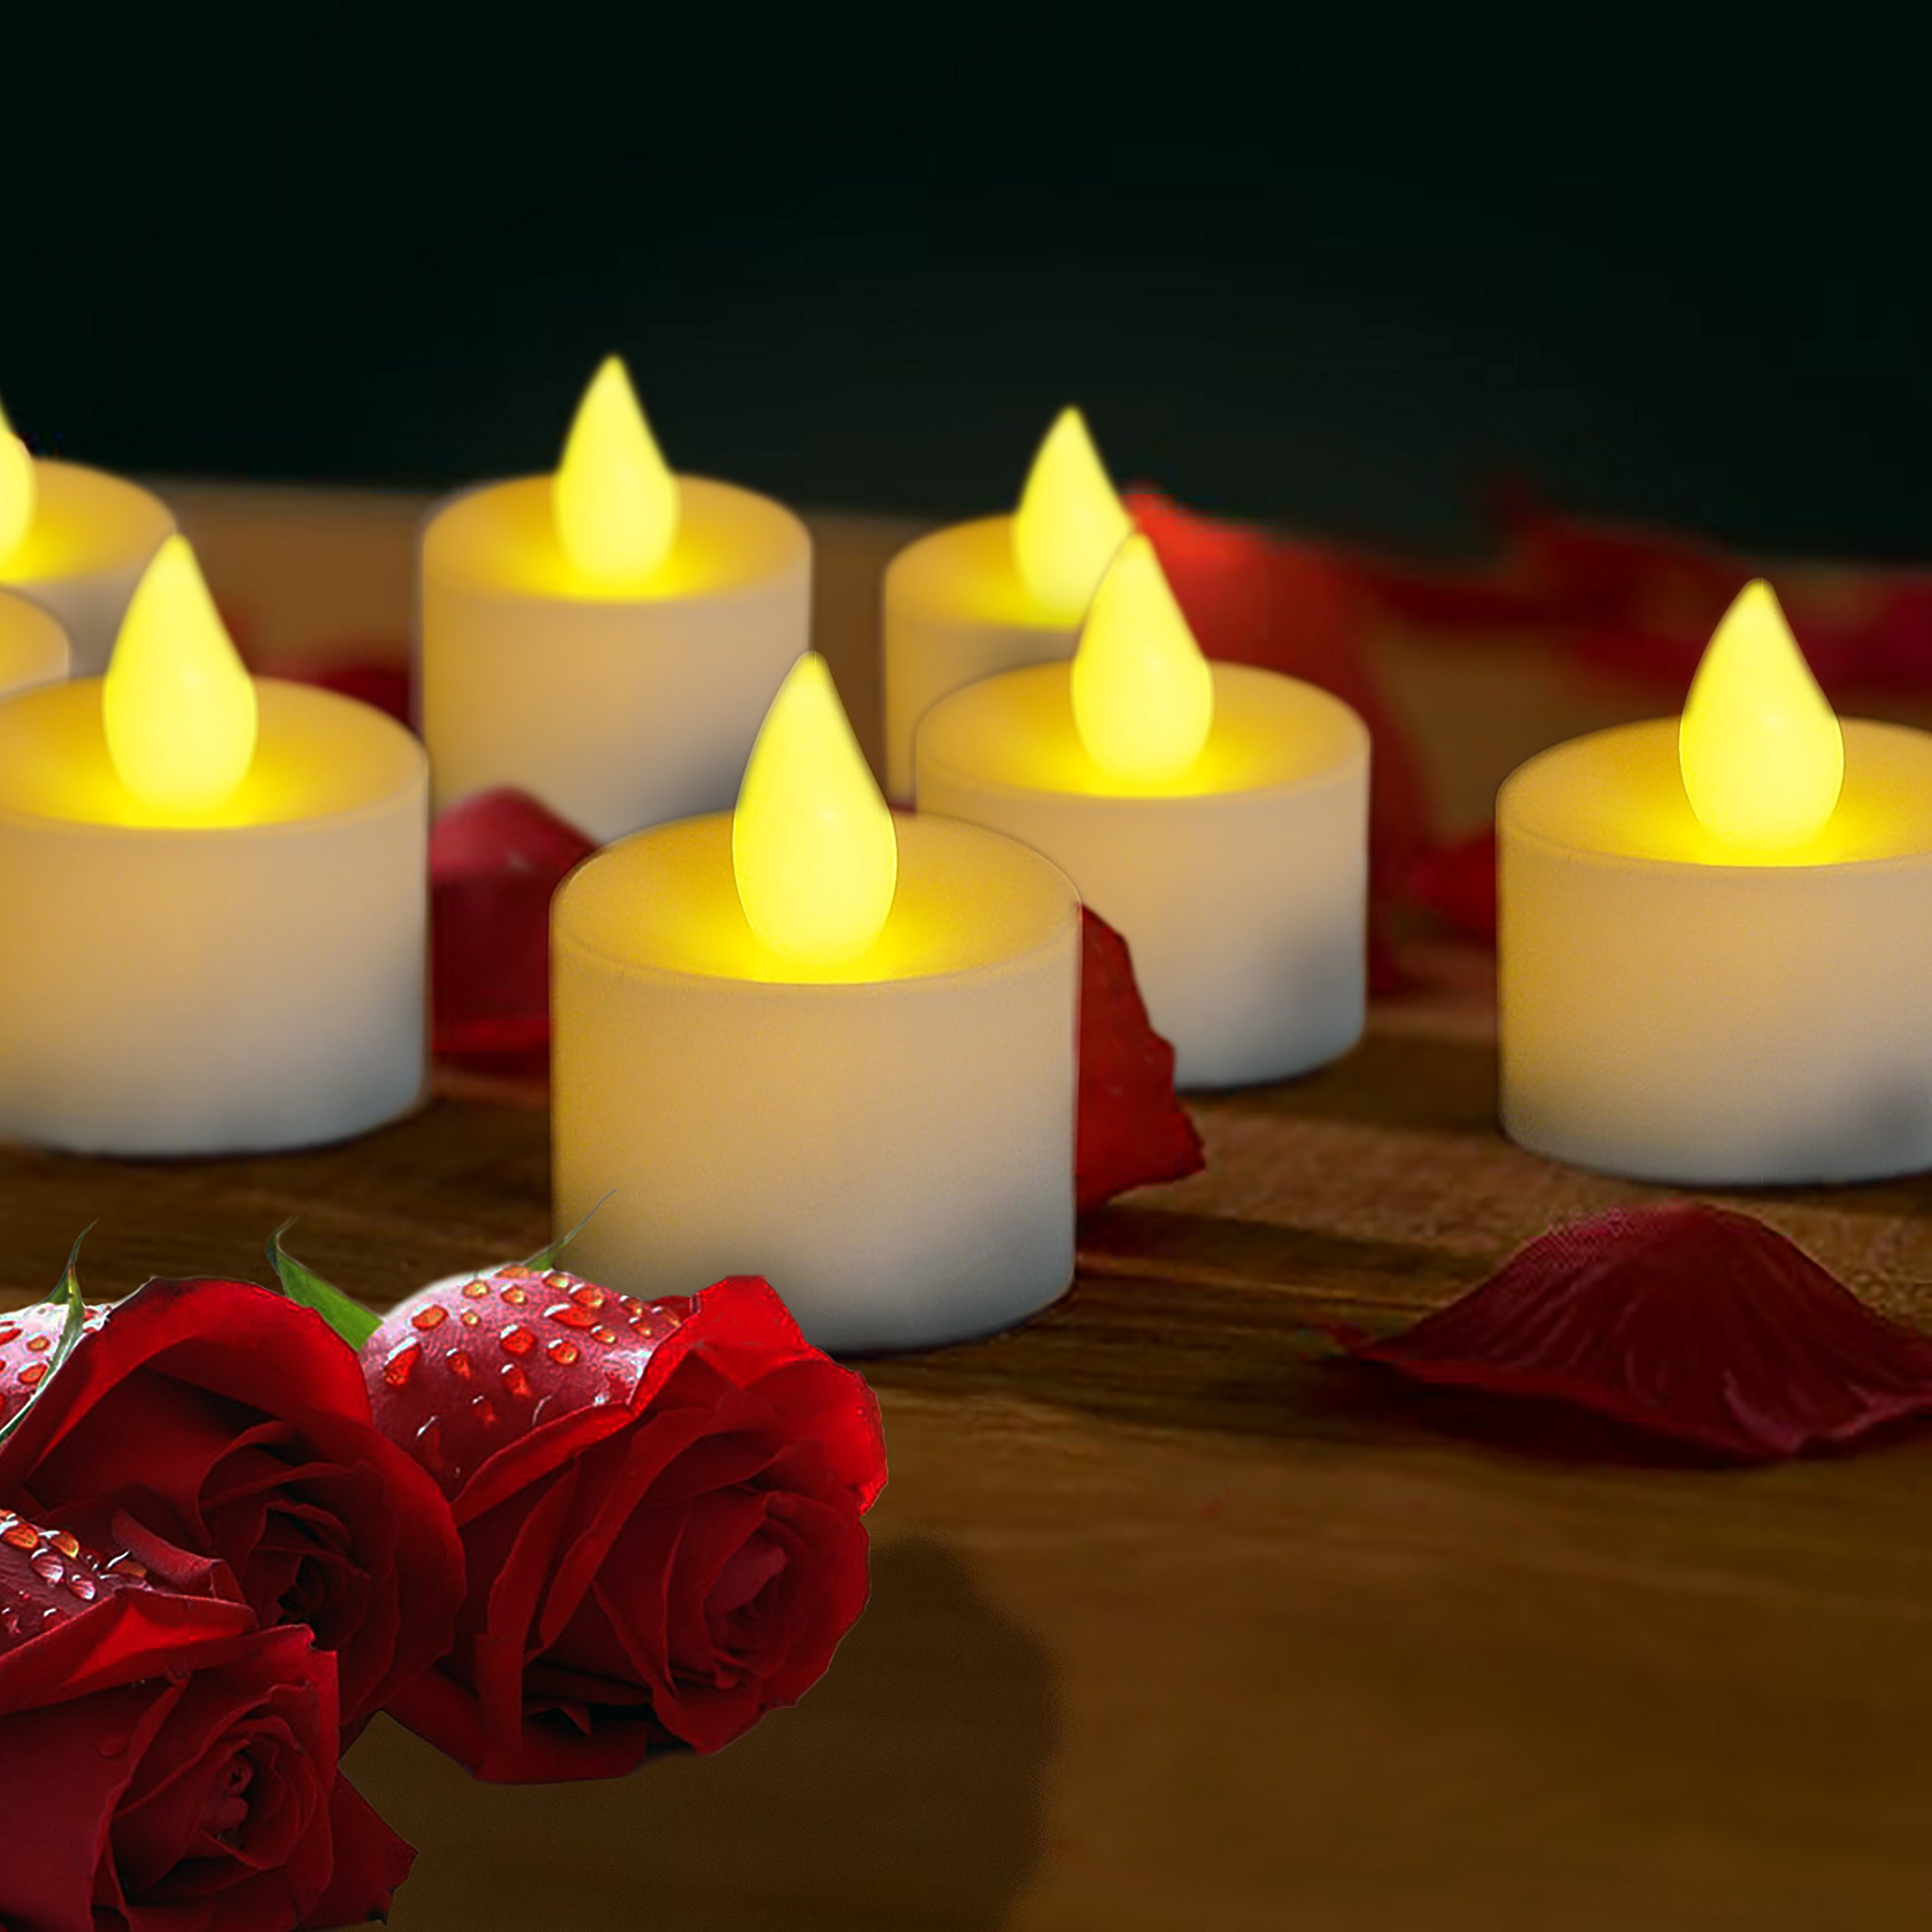 LED Candles Set of 24 Party Decor Holiday and Romance Battery Operated Smokeless Flame Less Candles